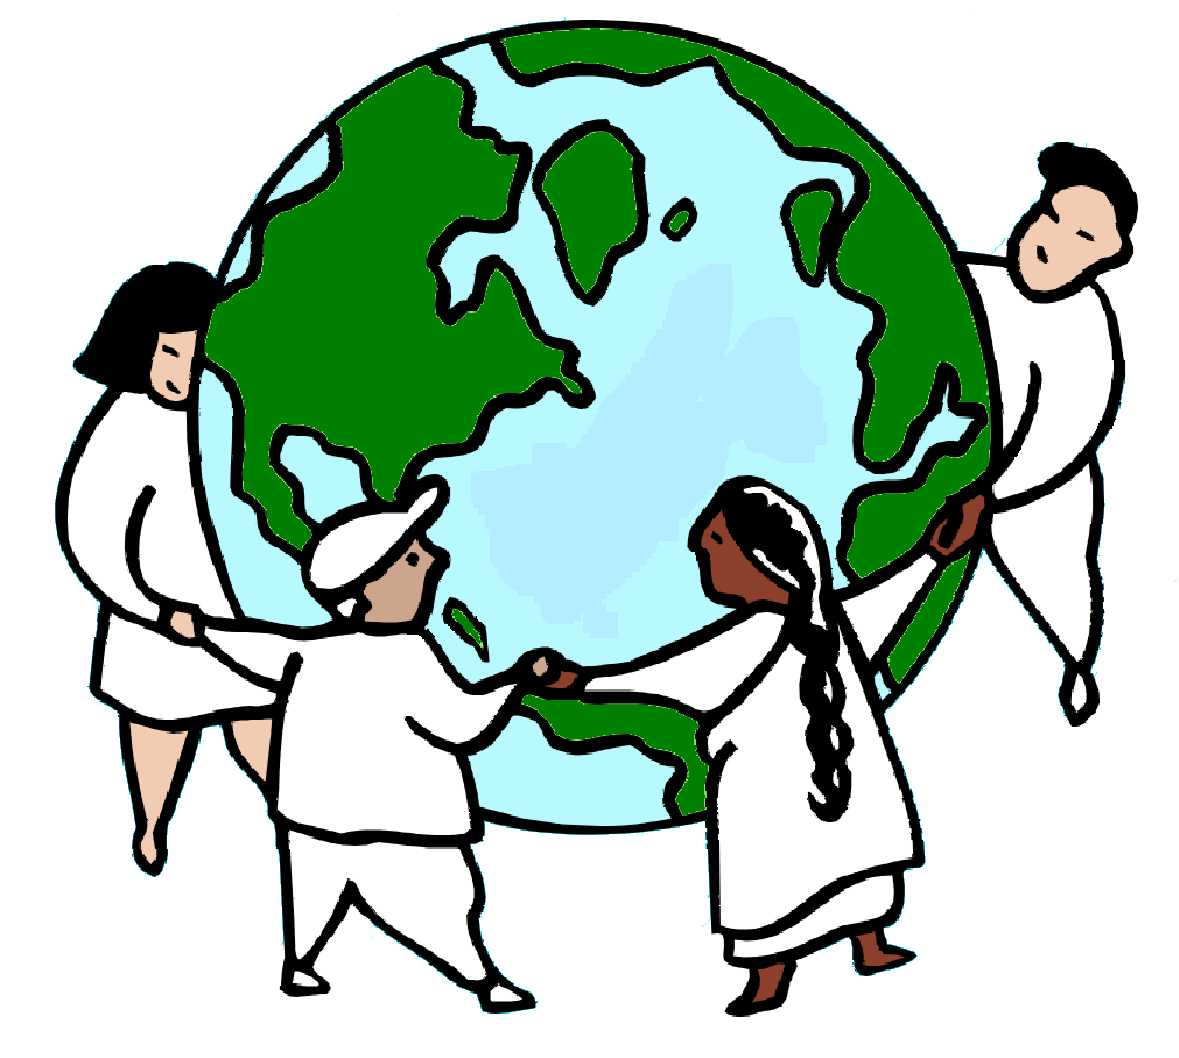 essay on the role of youth in protecting environment Check out our top free essays on protect our environment to help you write your own essay.